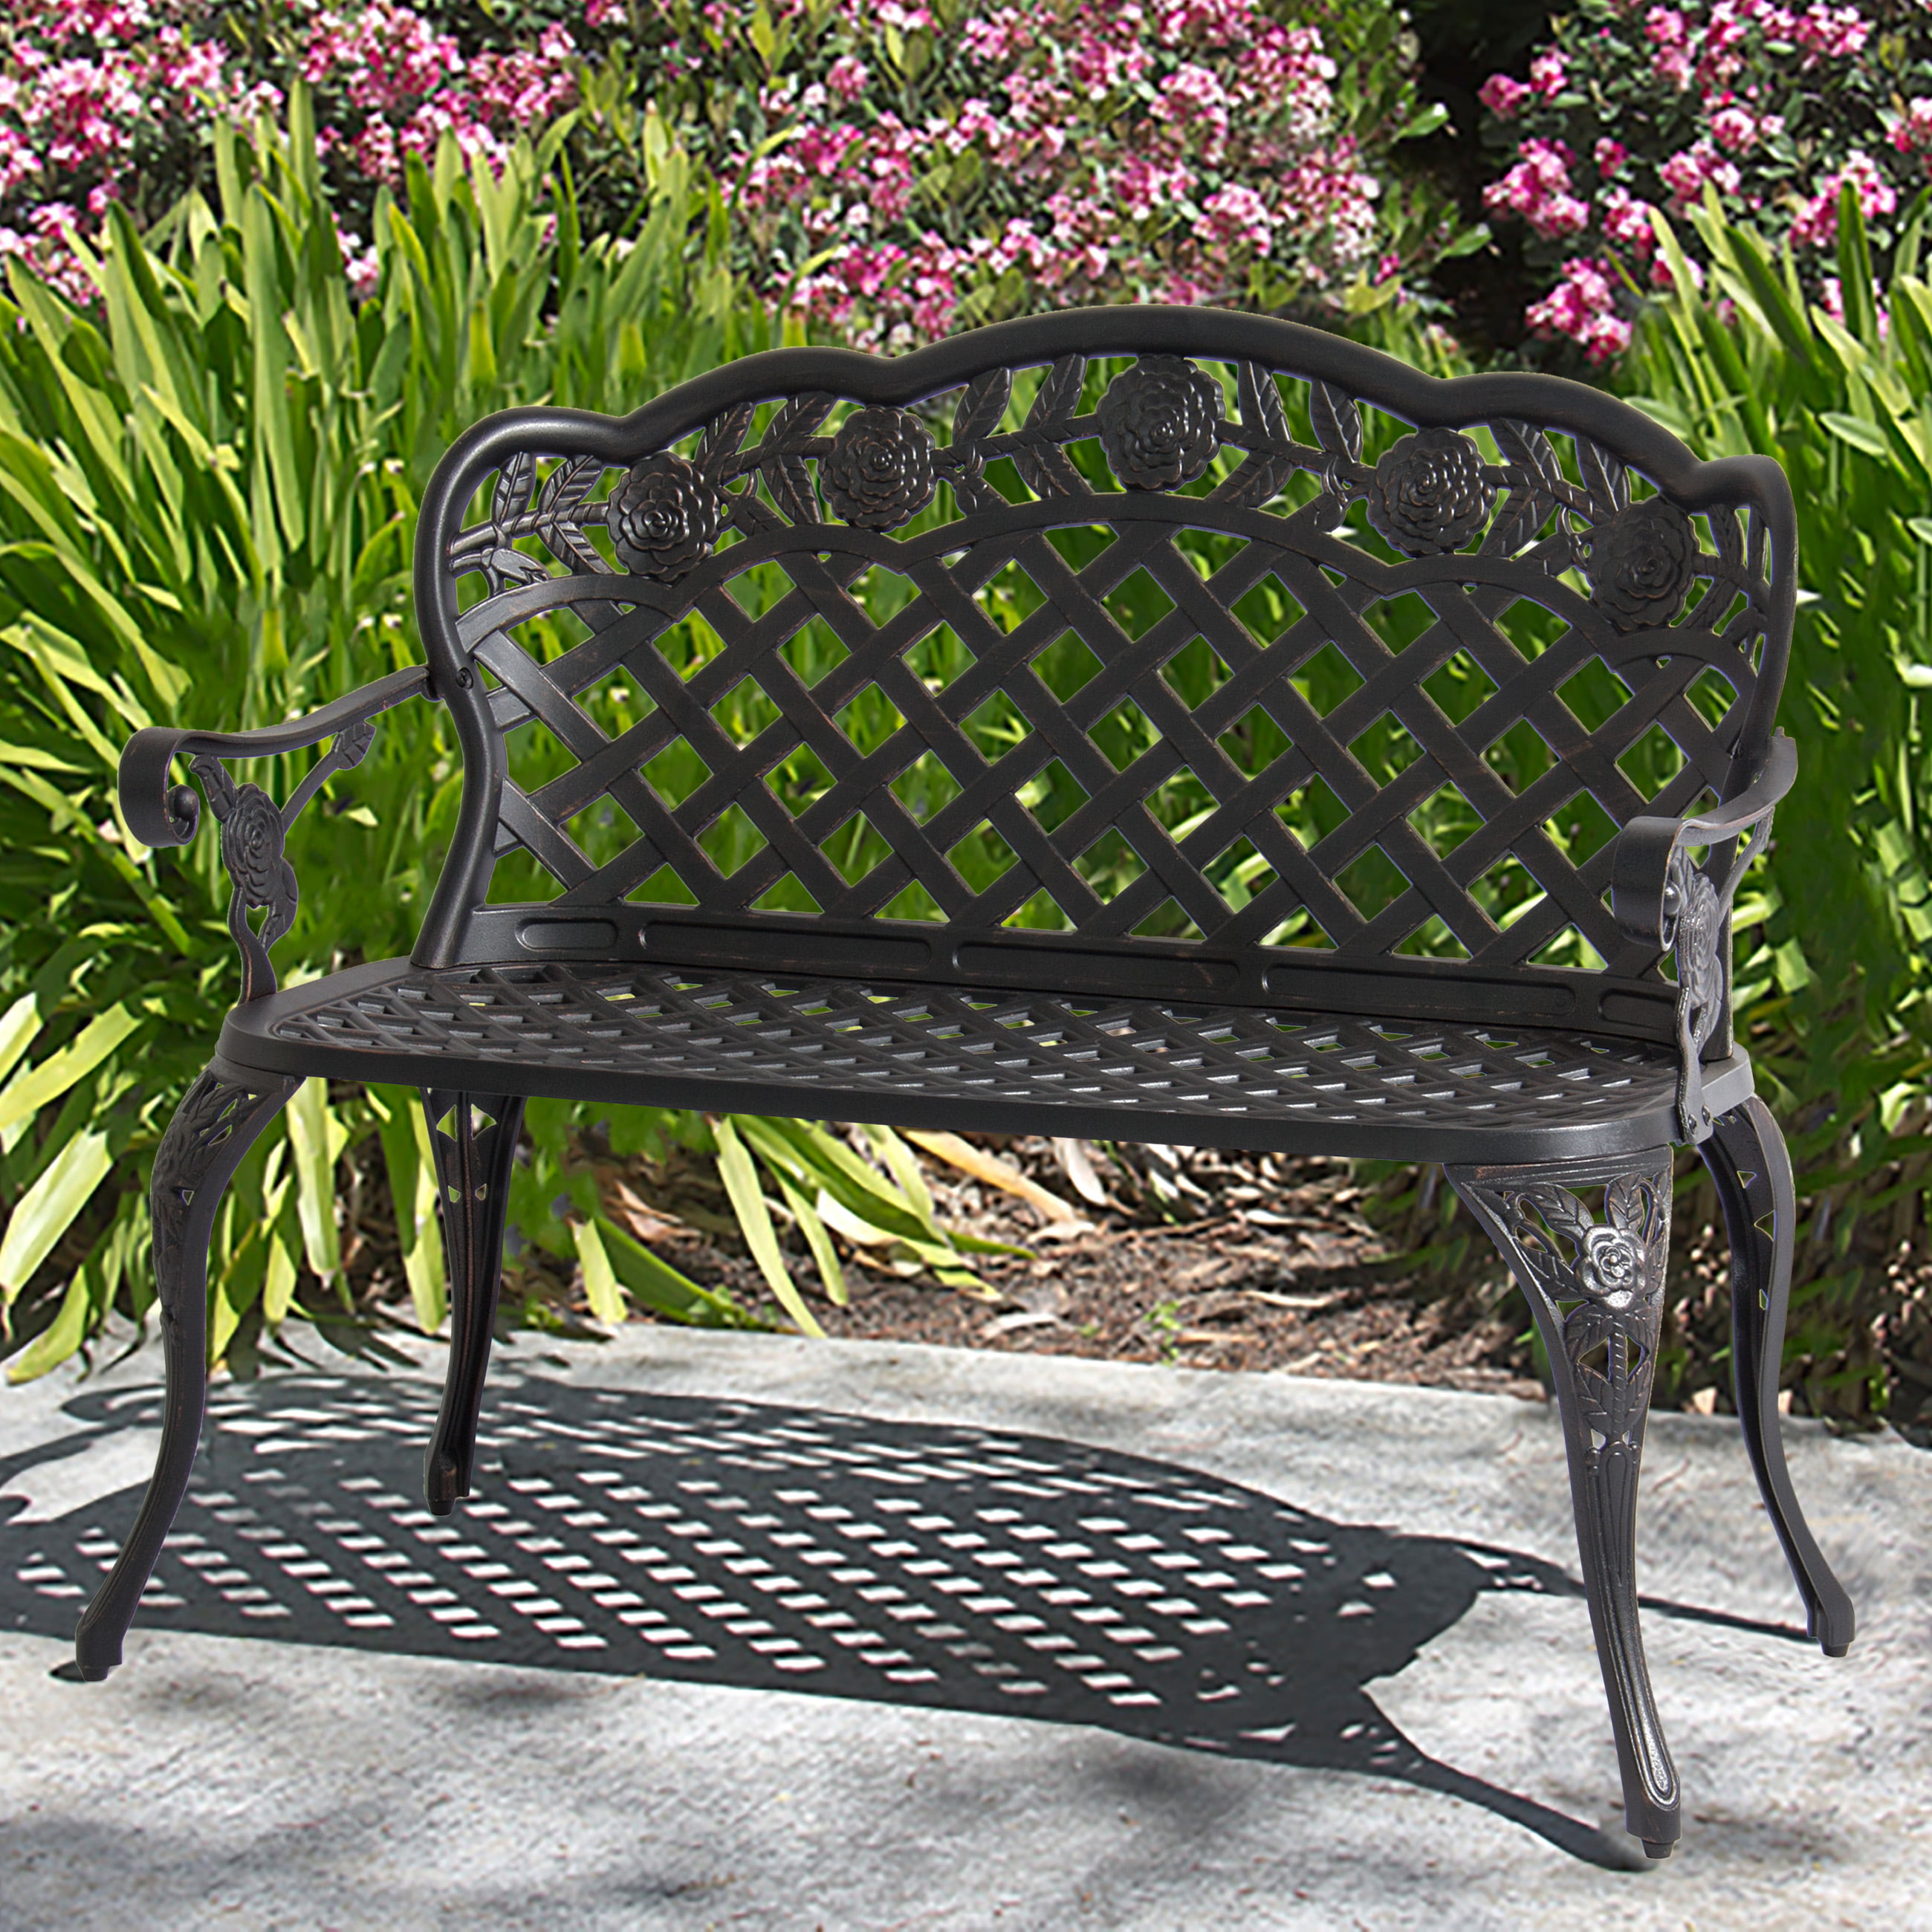 Best Choice Products Patio Garden Bench Cast Aluminum Outdoor Garden Yard Solid... by Best Choice Products